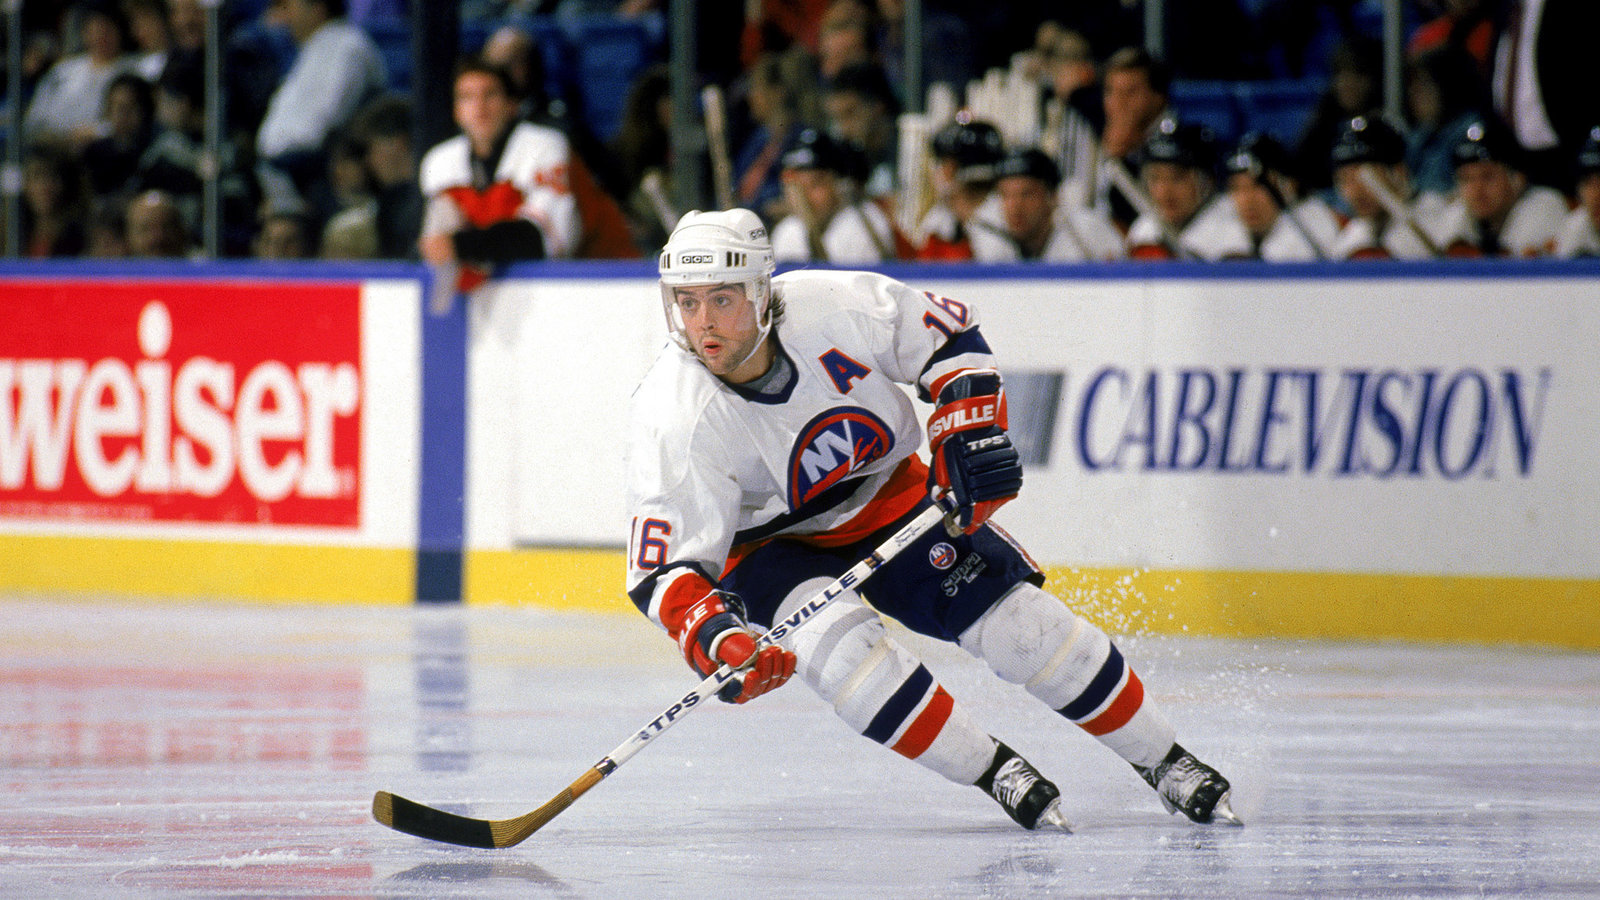 Ct Pick 3 >> Petition · New York Islanders: Induct Pat LaFontaine into ...